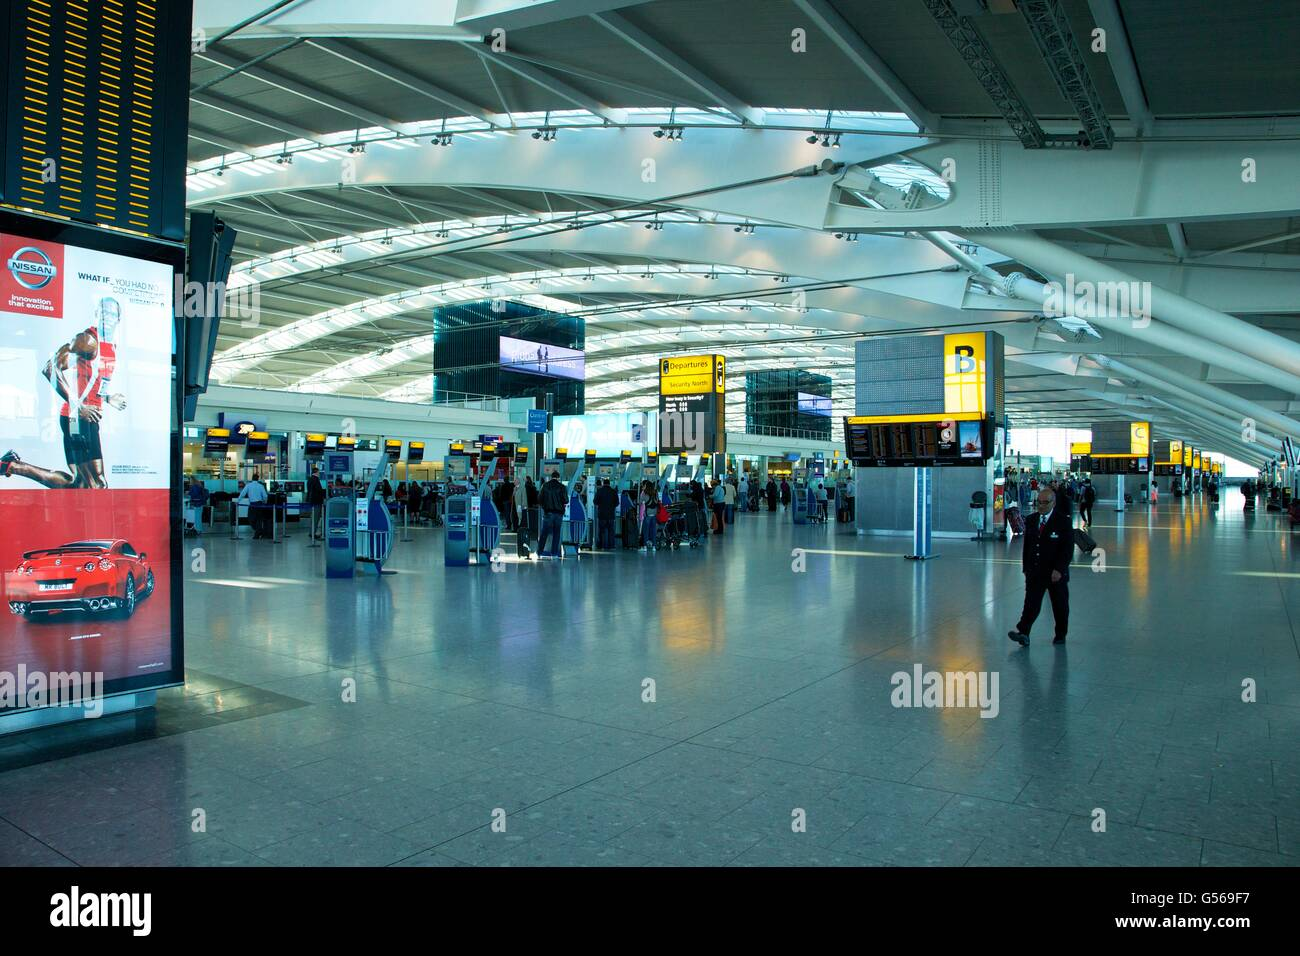 Interior of Terminal 5, Heathrow Airport,  London, England, UK, GB, - Stock Image